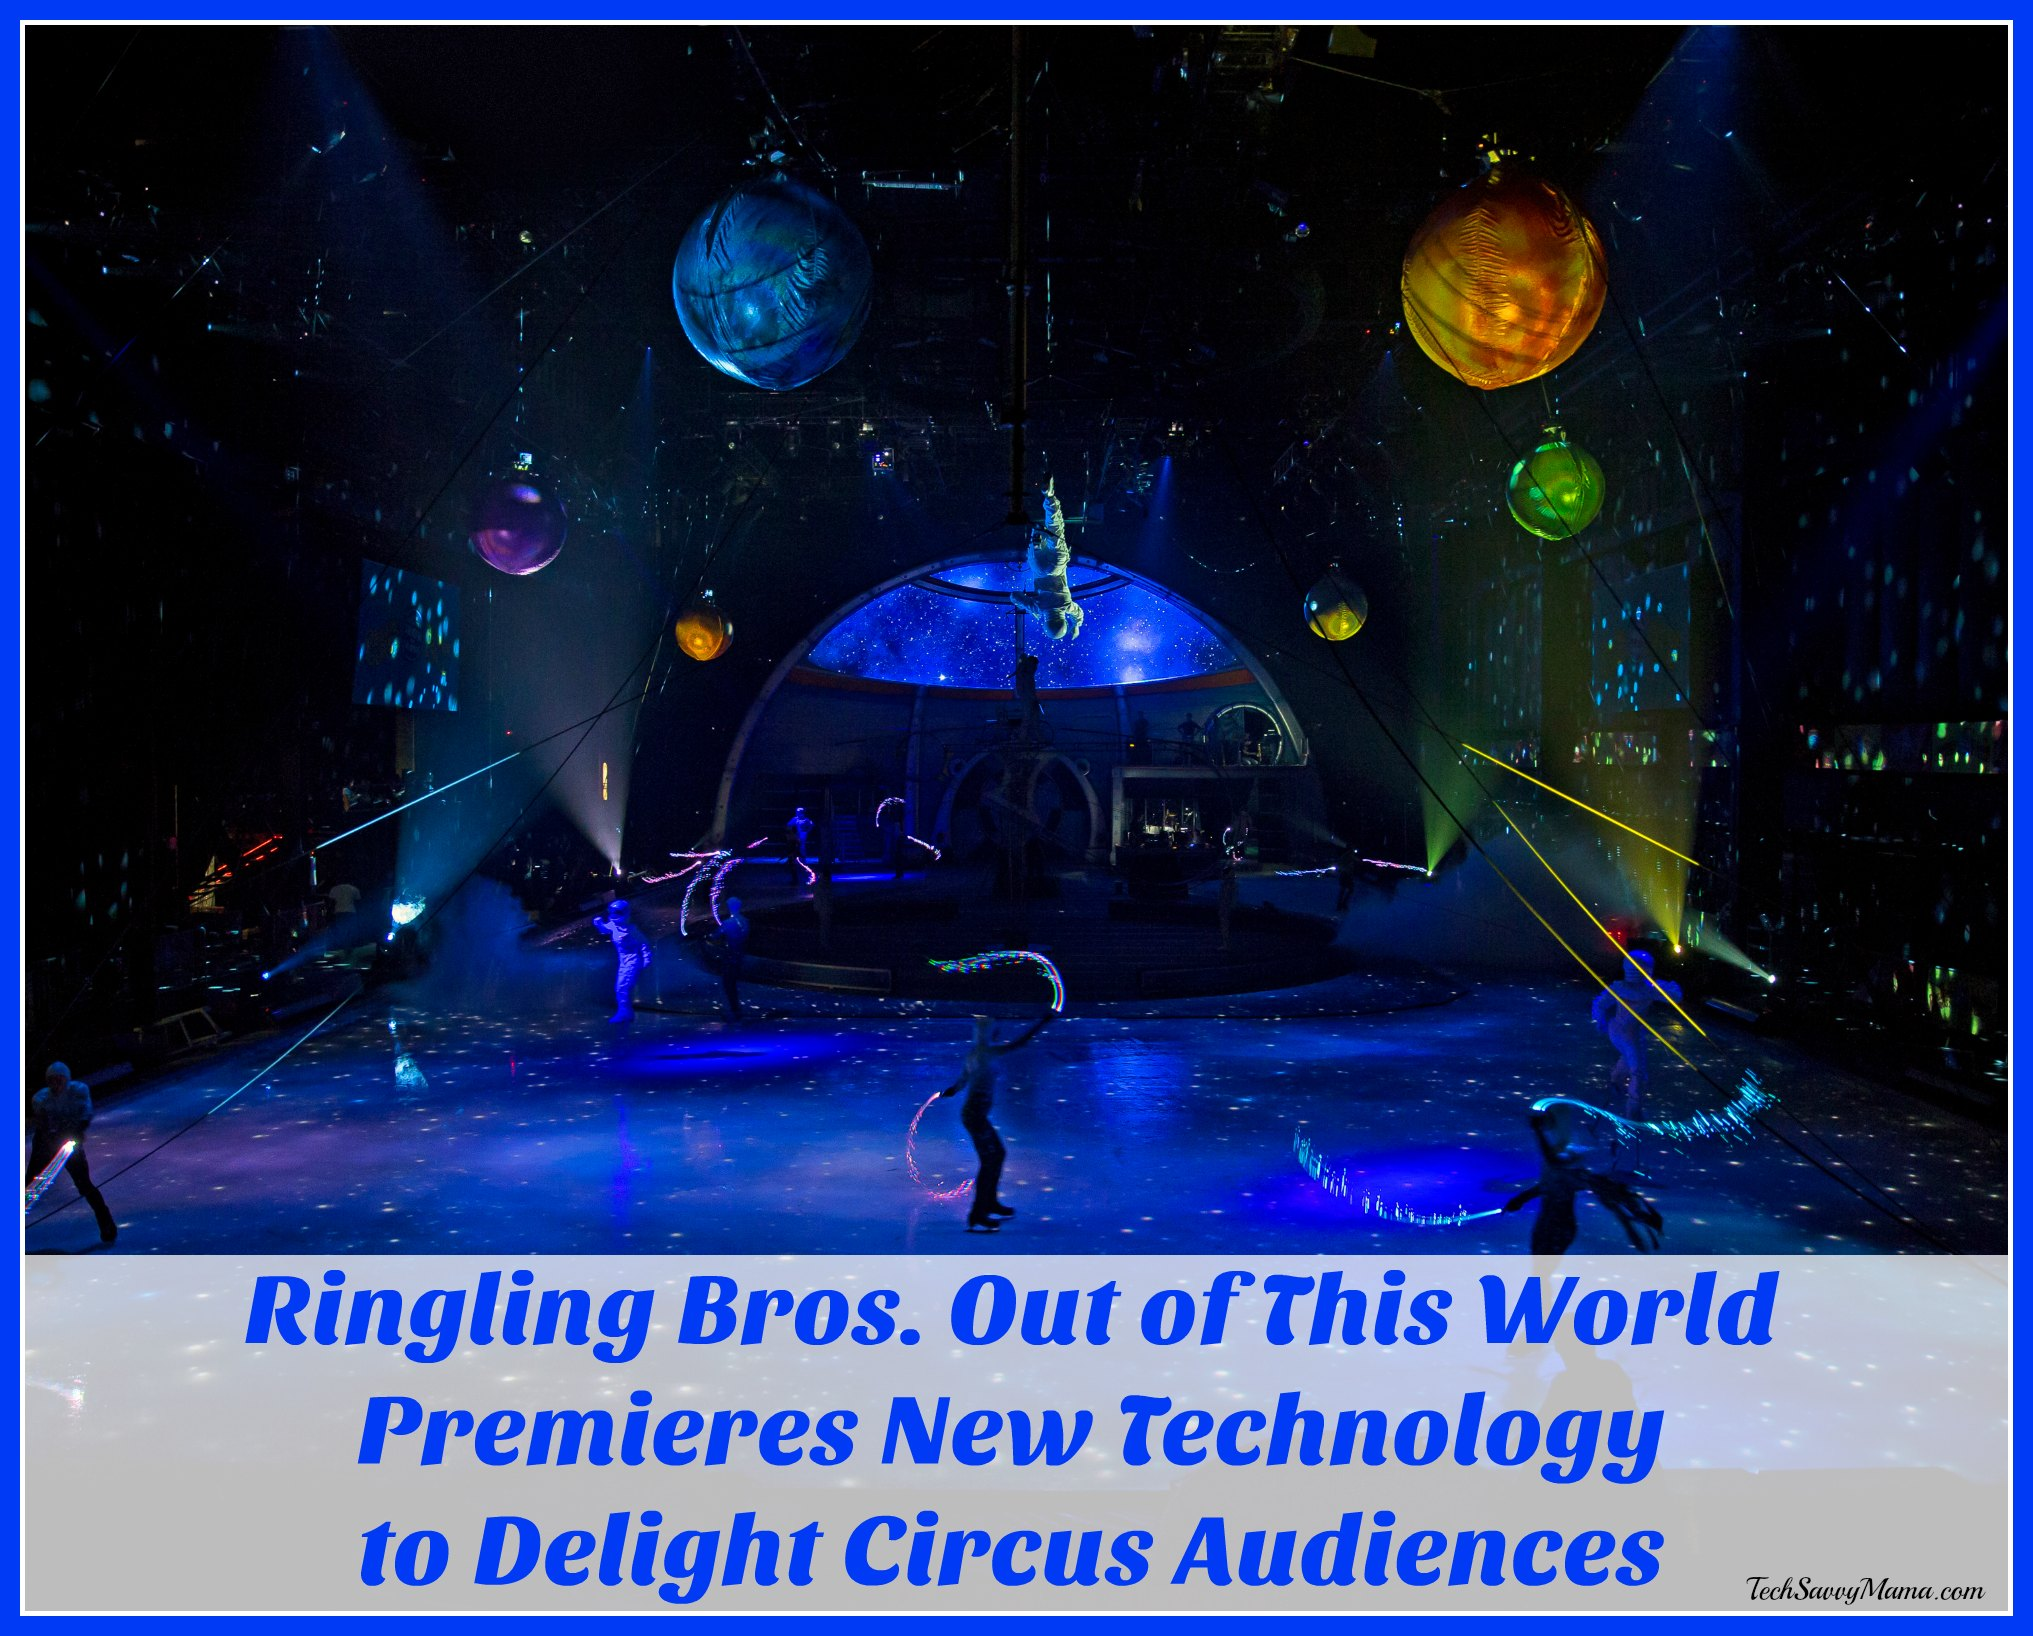 Ringling-Bros.-Out-of-This-World-Premieres-New-Technology-to-Delight-Circus-Audiences